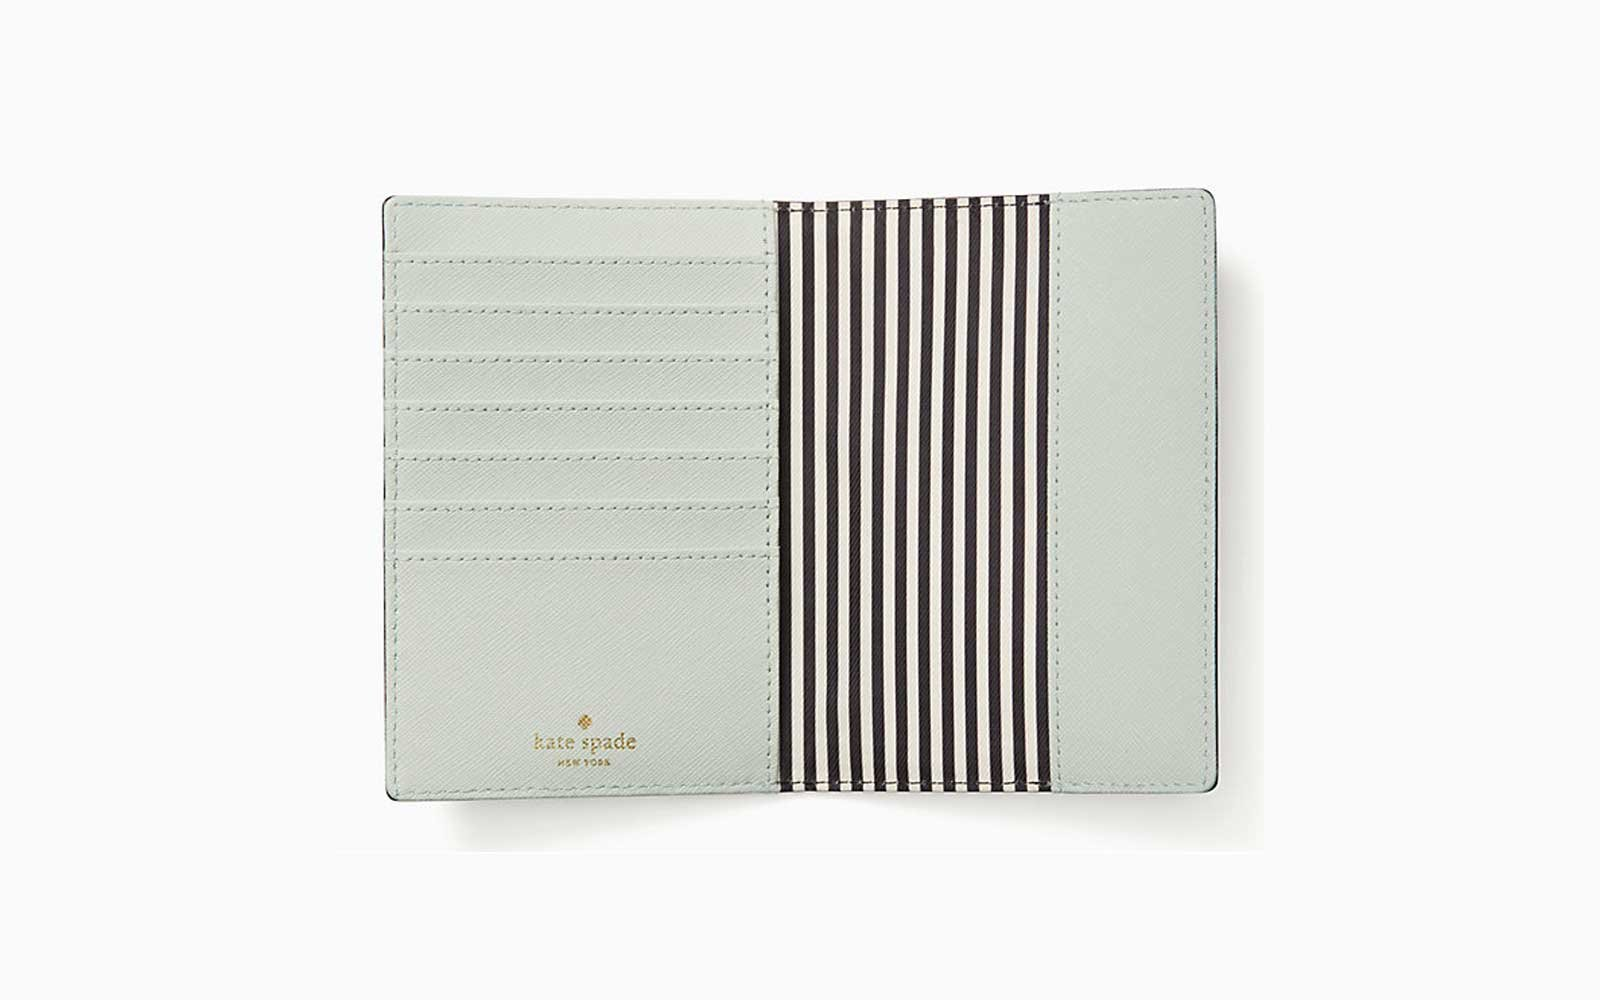 leather kate spade passport holder